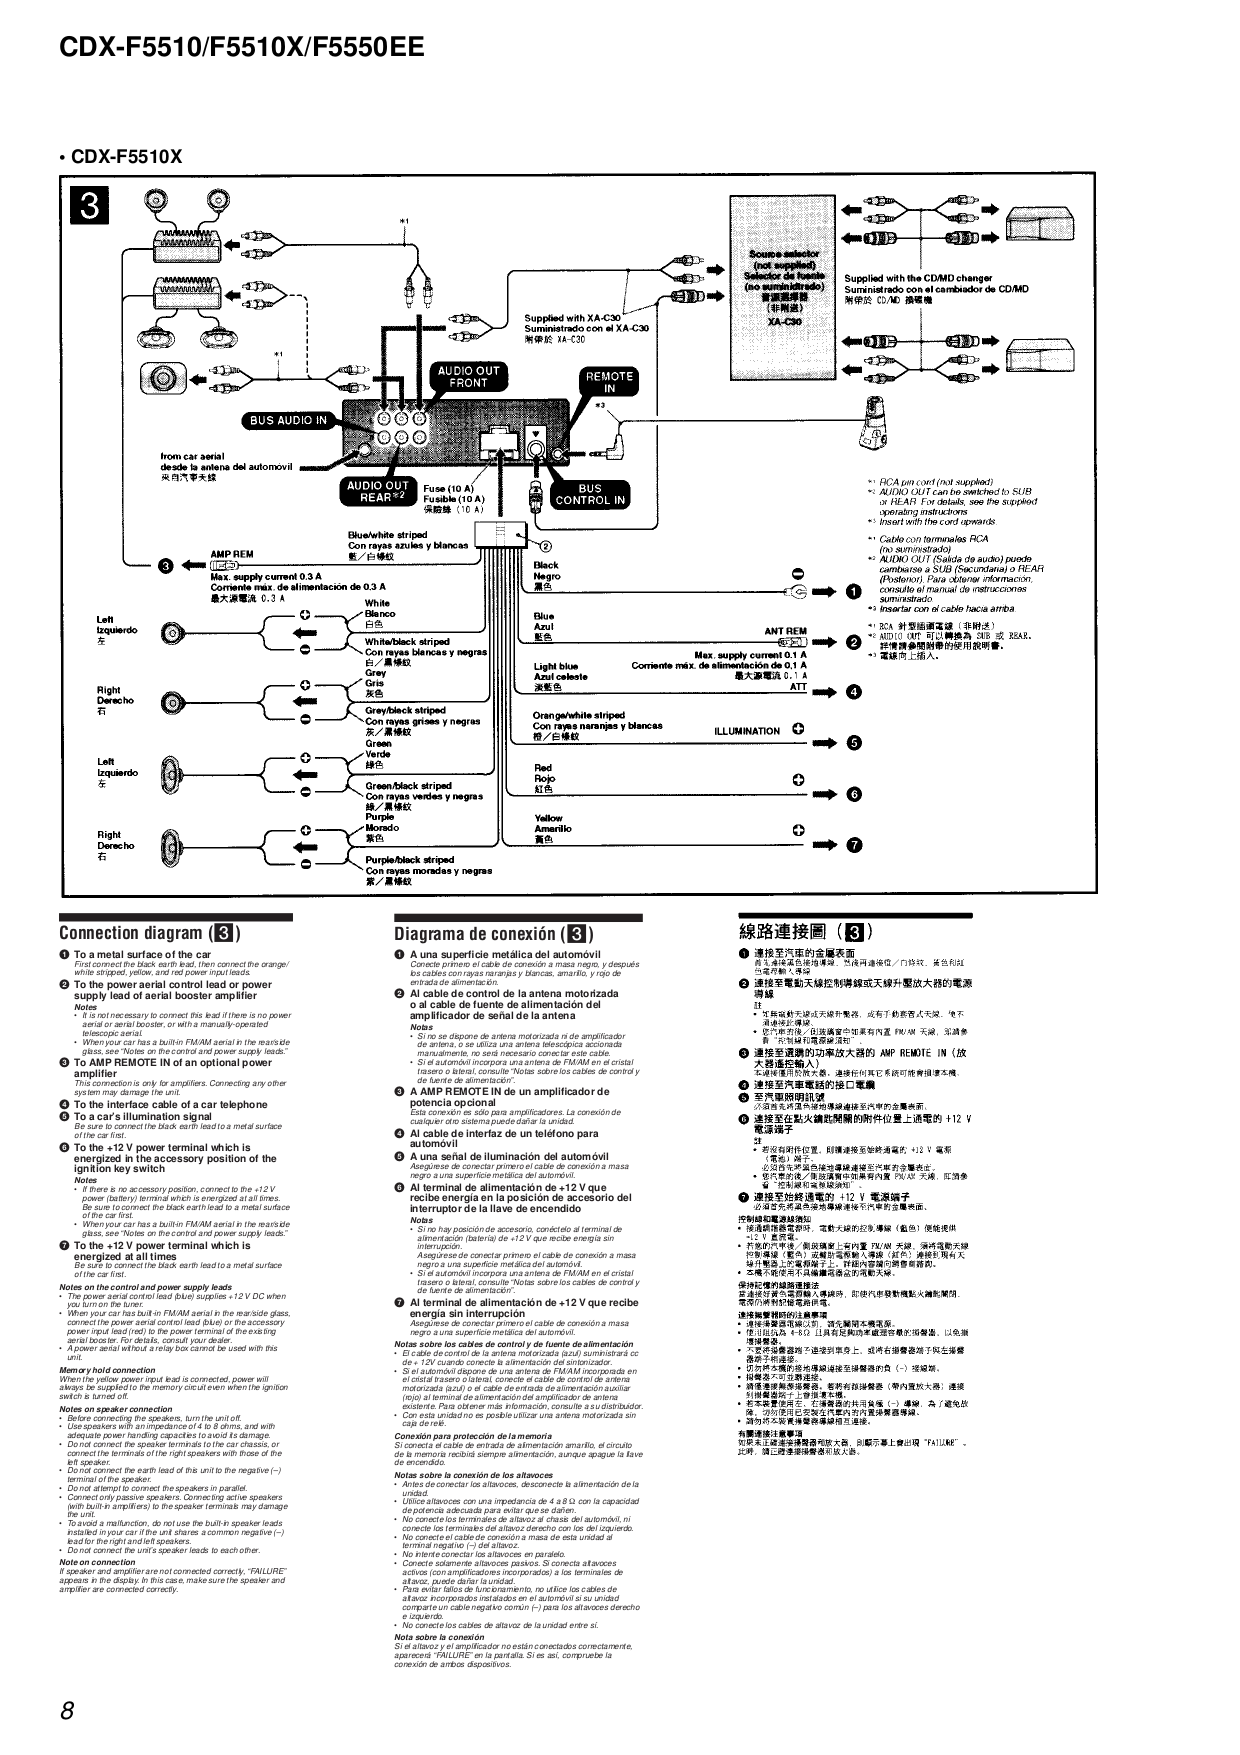 FORD Car Radio Wiring Connector in addition Sujet2003 together with 2006 Chevy Silverado Tail Light Wiring Diagram in addition Ge Dryer Trouble Shooting Wiring Diagram Profile Schematic Co Motor Within furthermore Solar Wiring Diagrams. on sony cdx wiring diagram